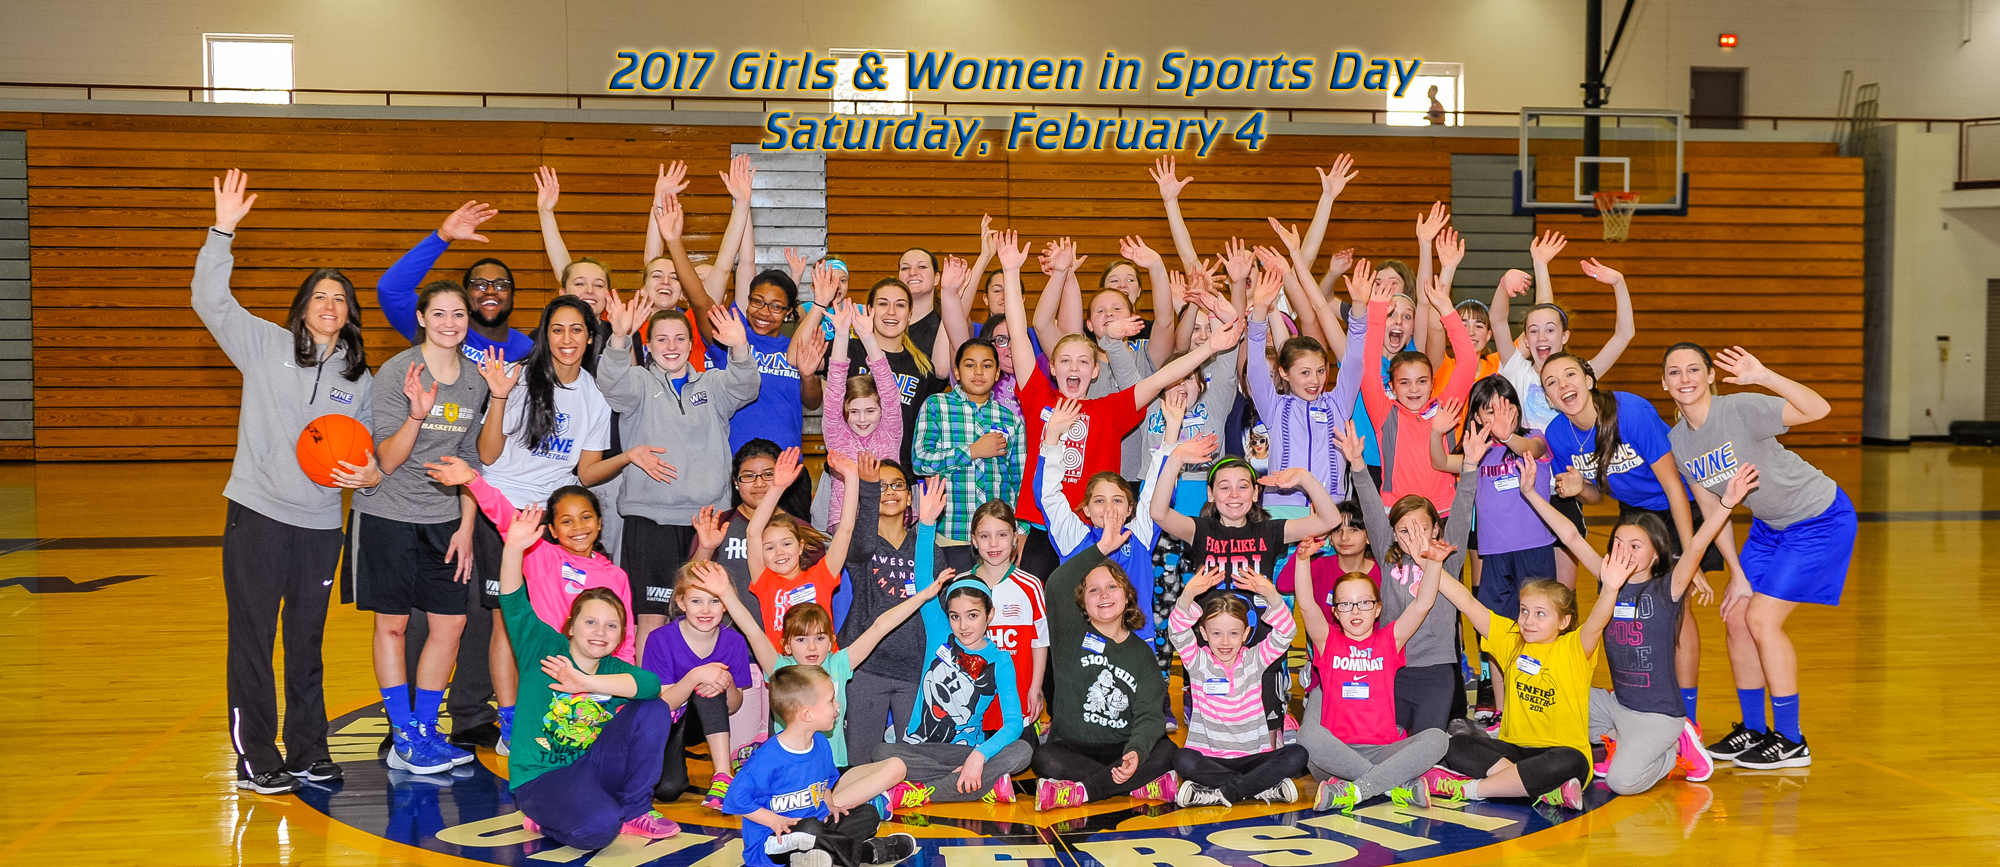 Western New England to Host 17th Annual Girls & Women in Sports Day on Saturday, February 4